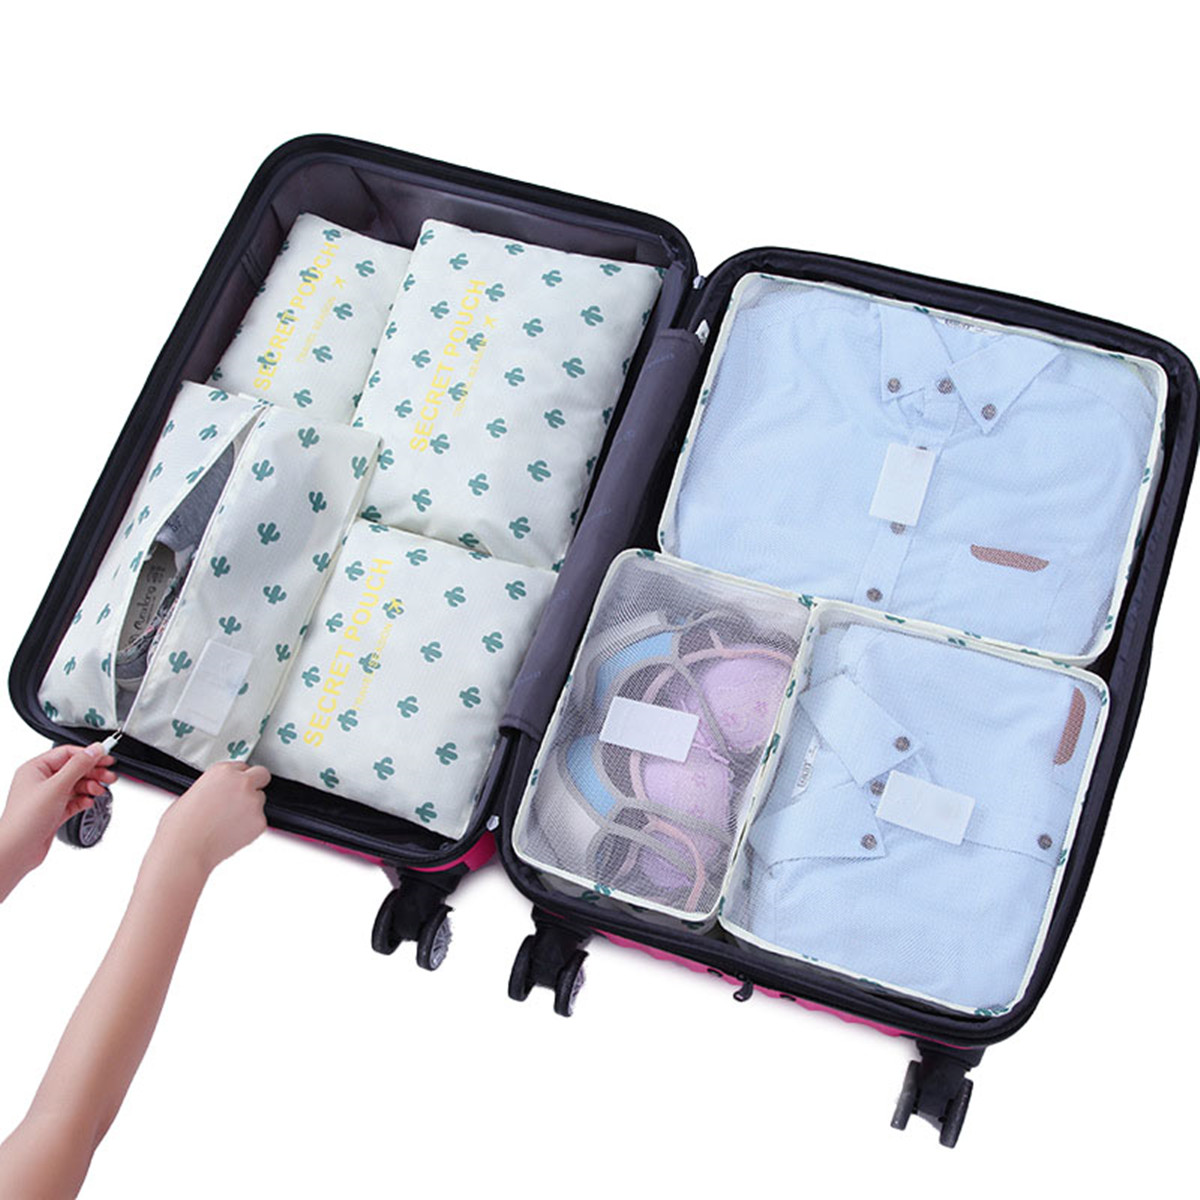 7Pcs Travel Storage Bags Set Portable Tidy Suitcase Organizer Waterproof Clothes Packing Bag